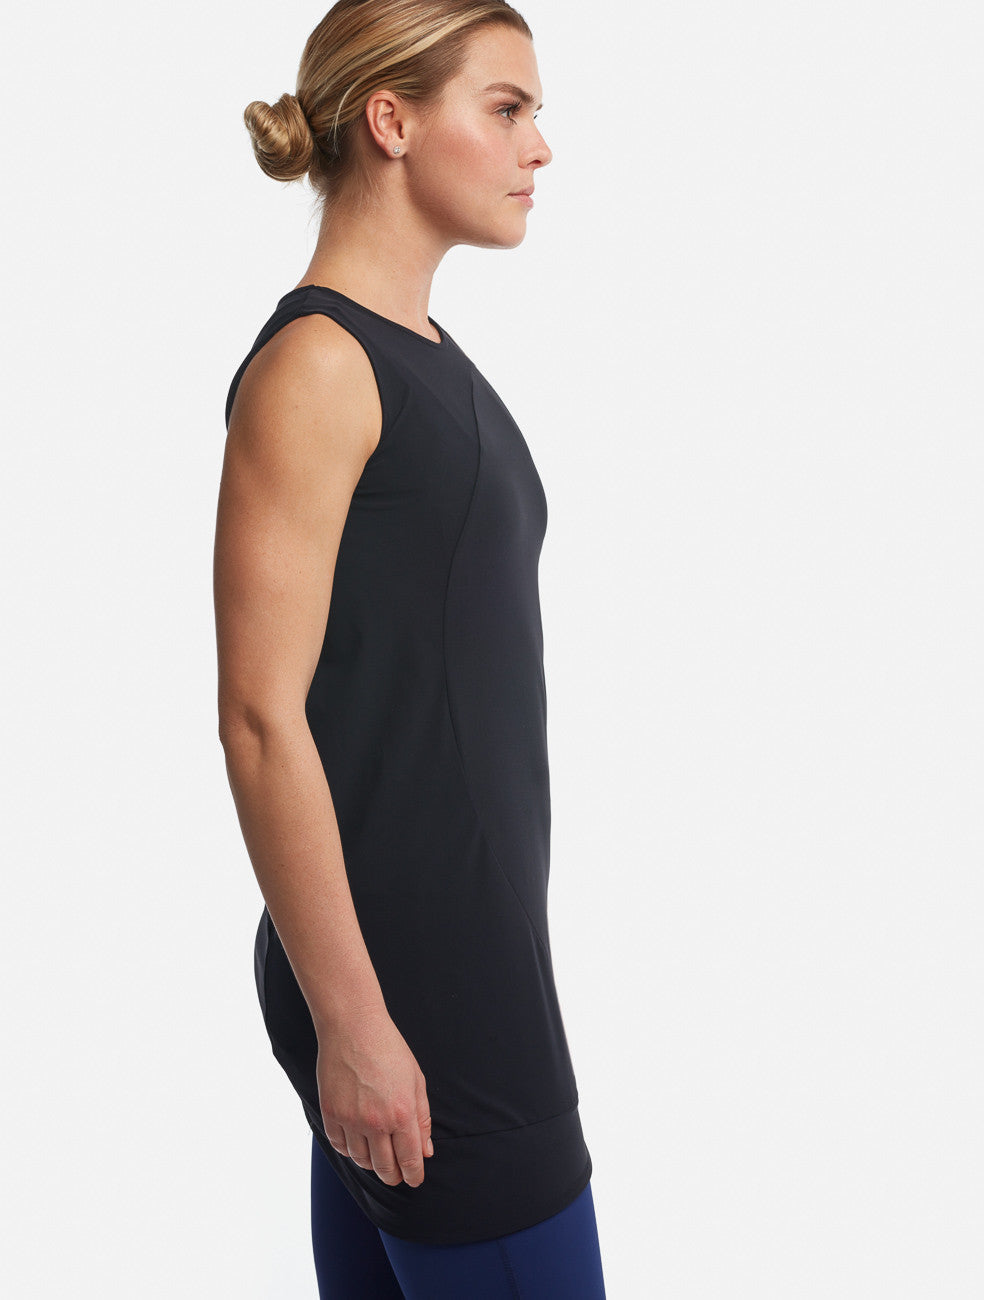 Black Circle Tank [Performance Jersey] - Haven Collective